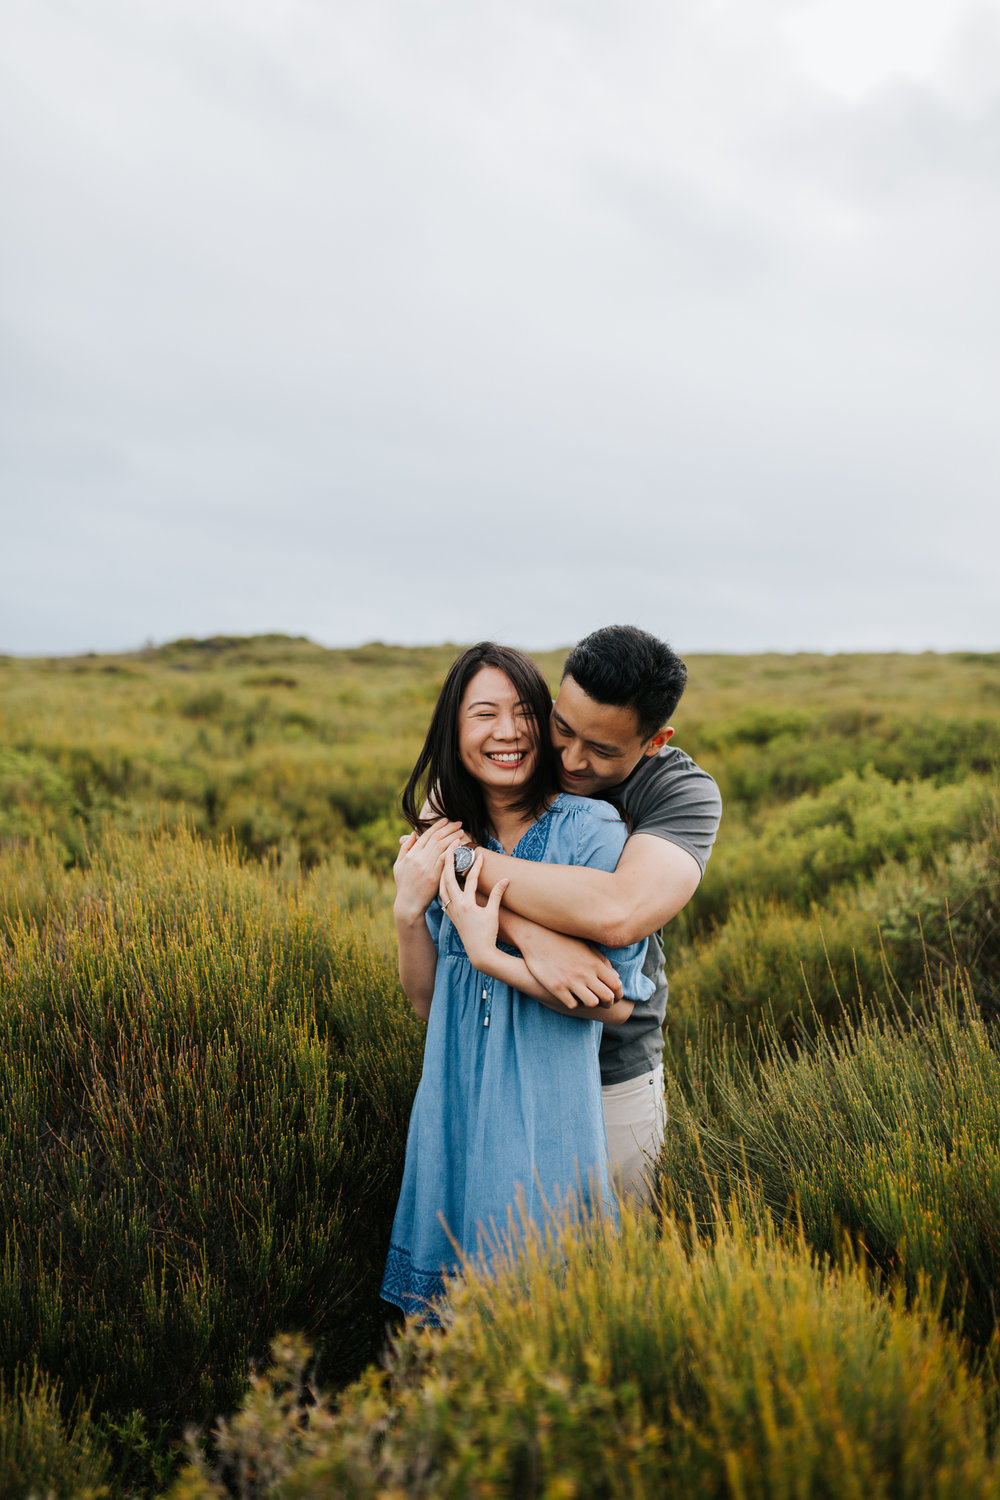 Lishien & Jason Engagement - Kurnell Cliffs - Samantha Heather Photography-51.jpg